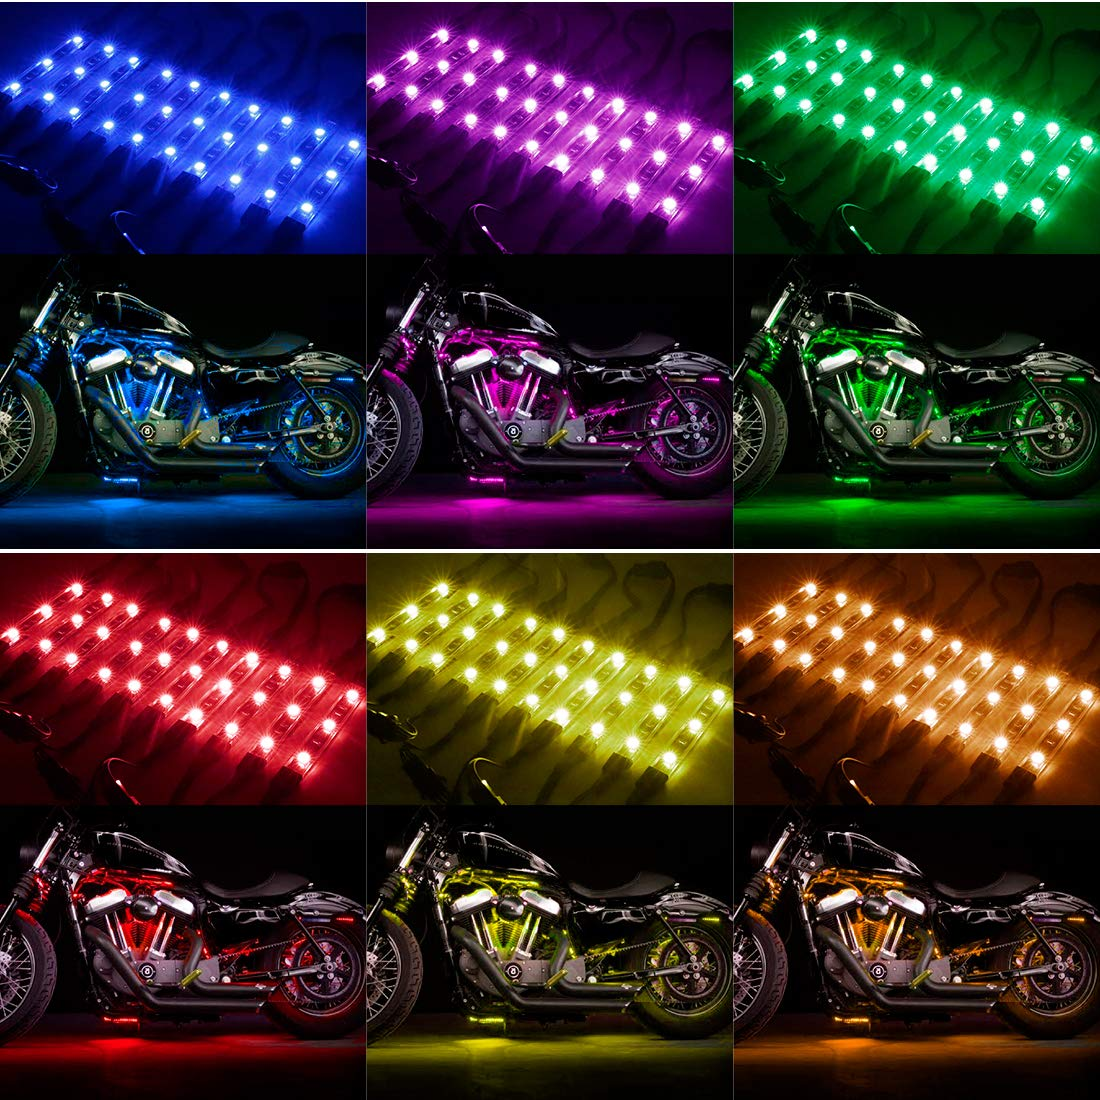 12Pcs Led Light Kits Multi-Color Wireless IR//RF Remote Controller Motorcycle Atmosphere Lamp RGB Flexible Strips Ground Effect Light for Motorcycle-NEW UPGRADE